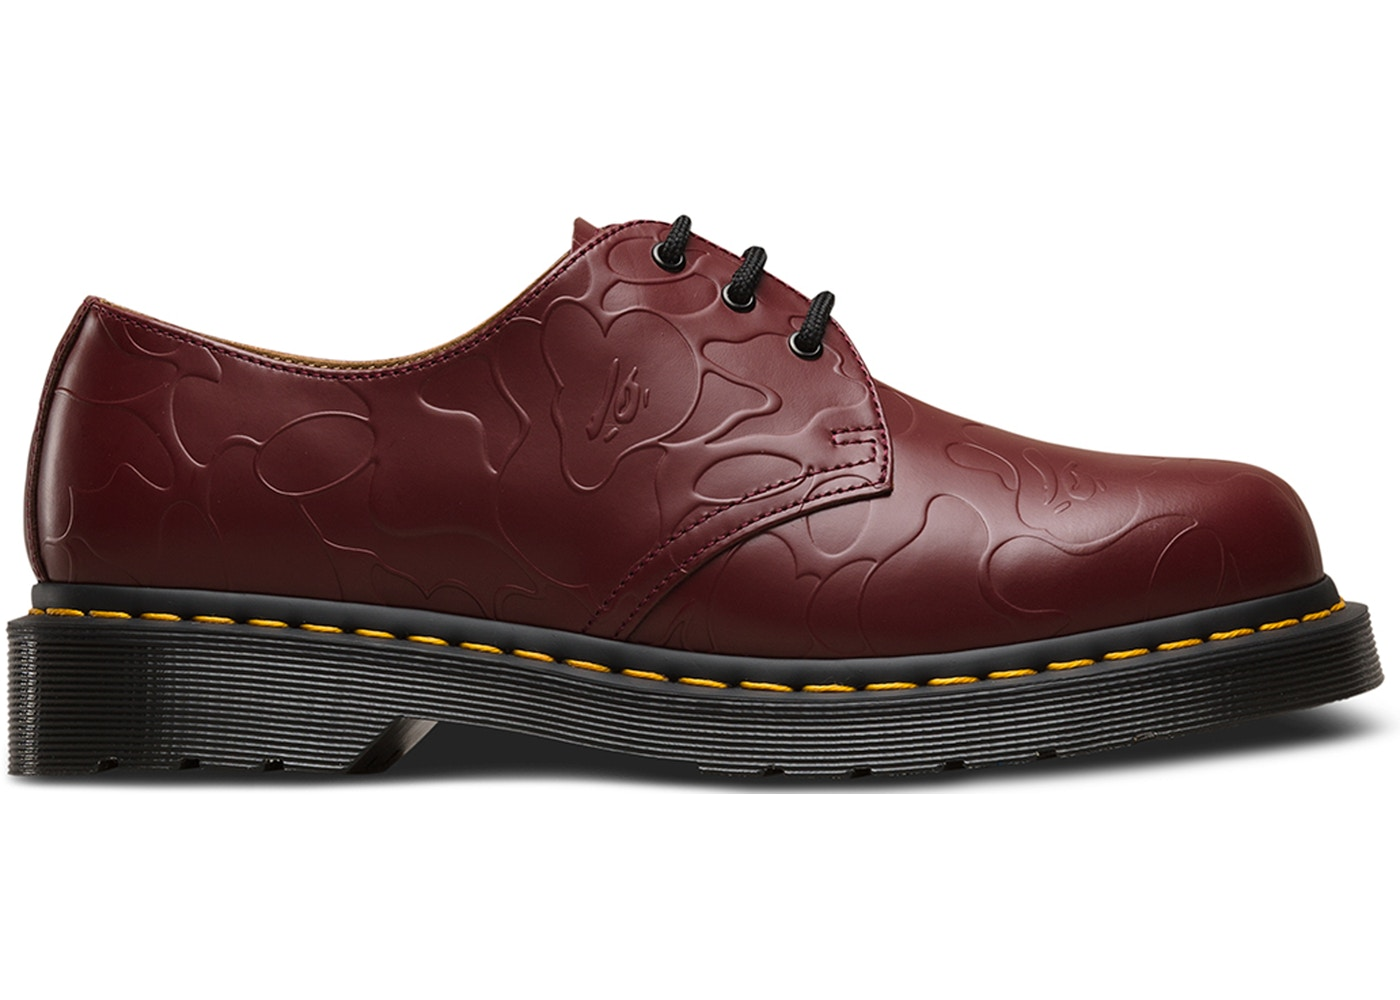 Dr. Martens 3 Eye Bape Oxblood by Stock X